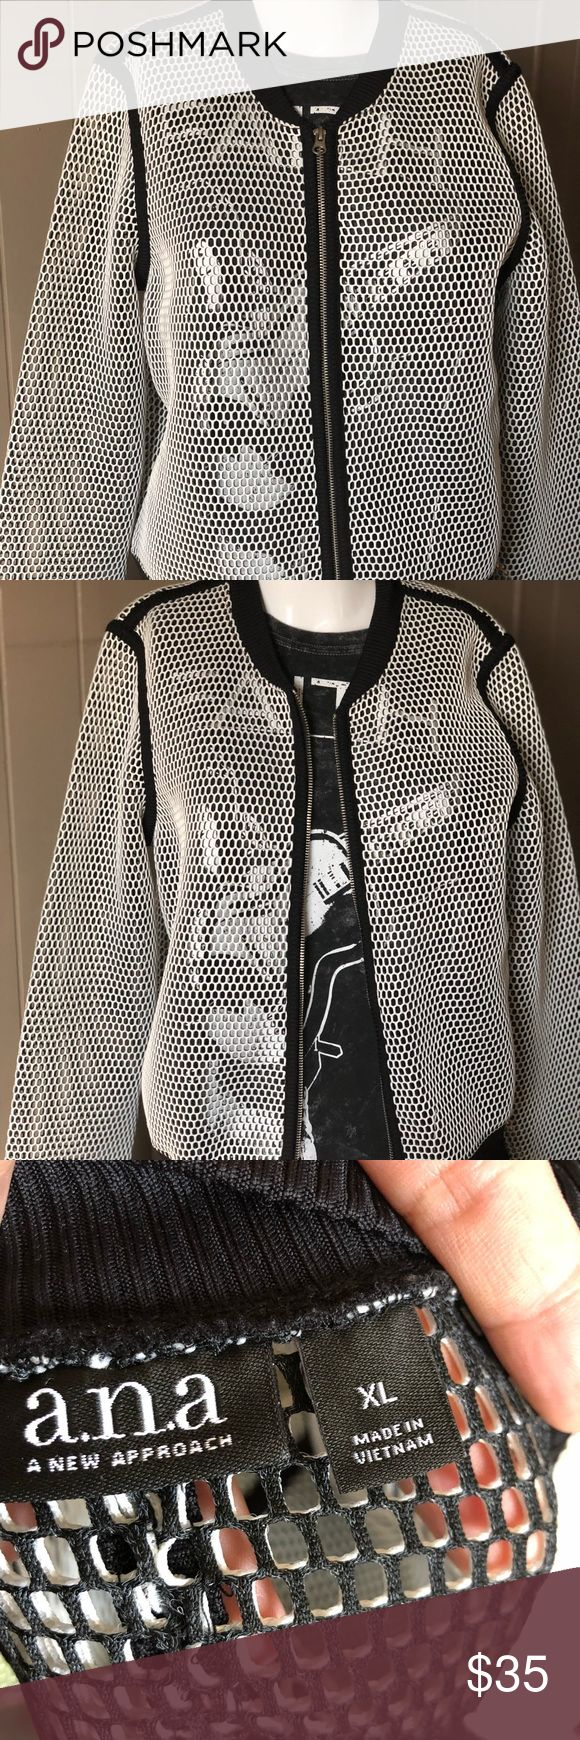 ❤️WOMANS BOMBER JACKET❤️ 🖤WOMANS FISHNET BOMBER JACKET! BRAND NEW WITH NO TAGS! 🖤 make an offer 😀 a.n.a Jackets & Coats